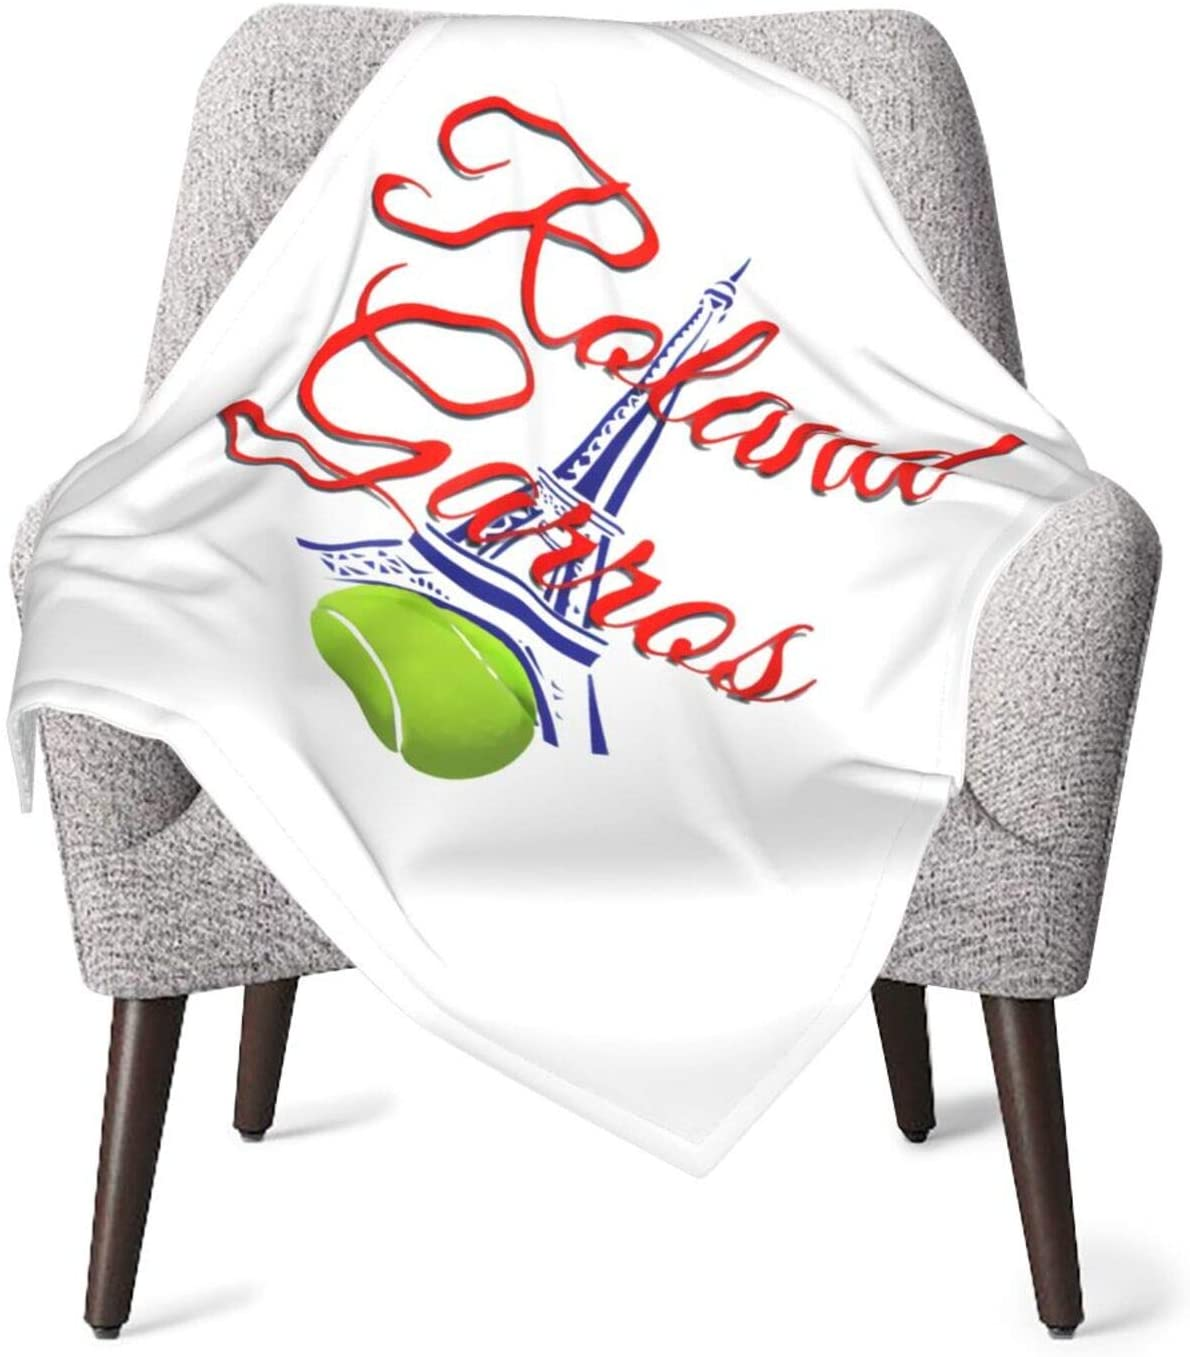 Tubdr Ro=Landgarros Soft Breathable Comfortable Lightweight and Warm Baby Blankets